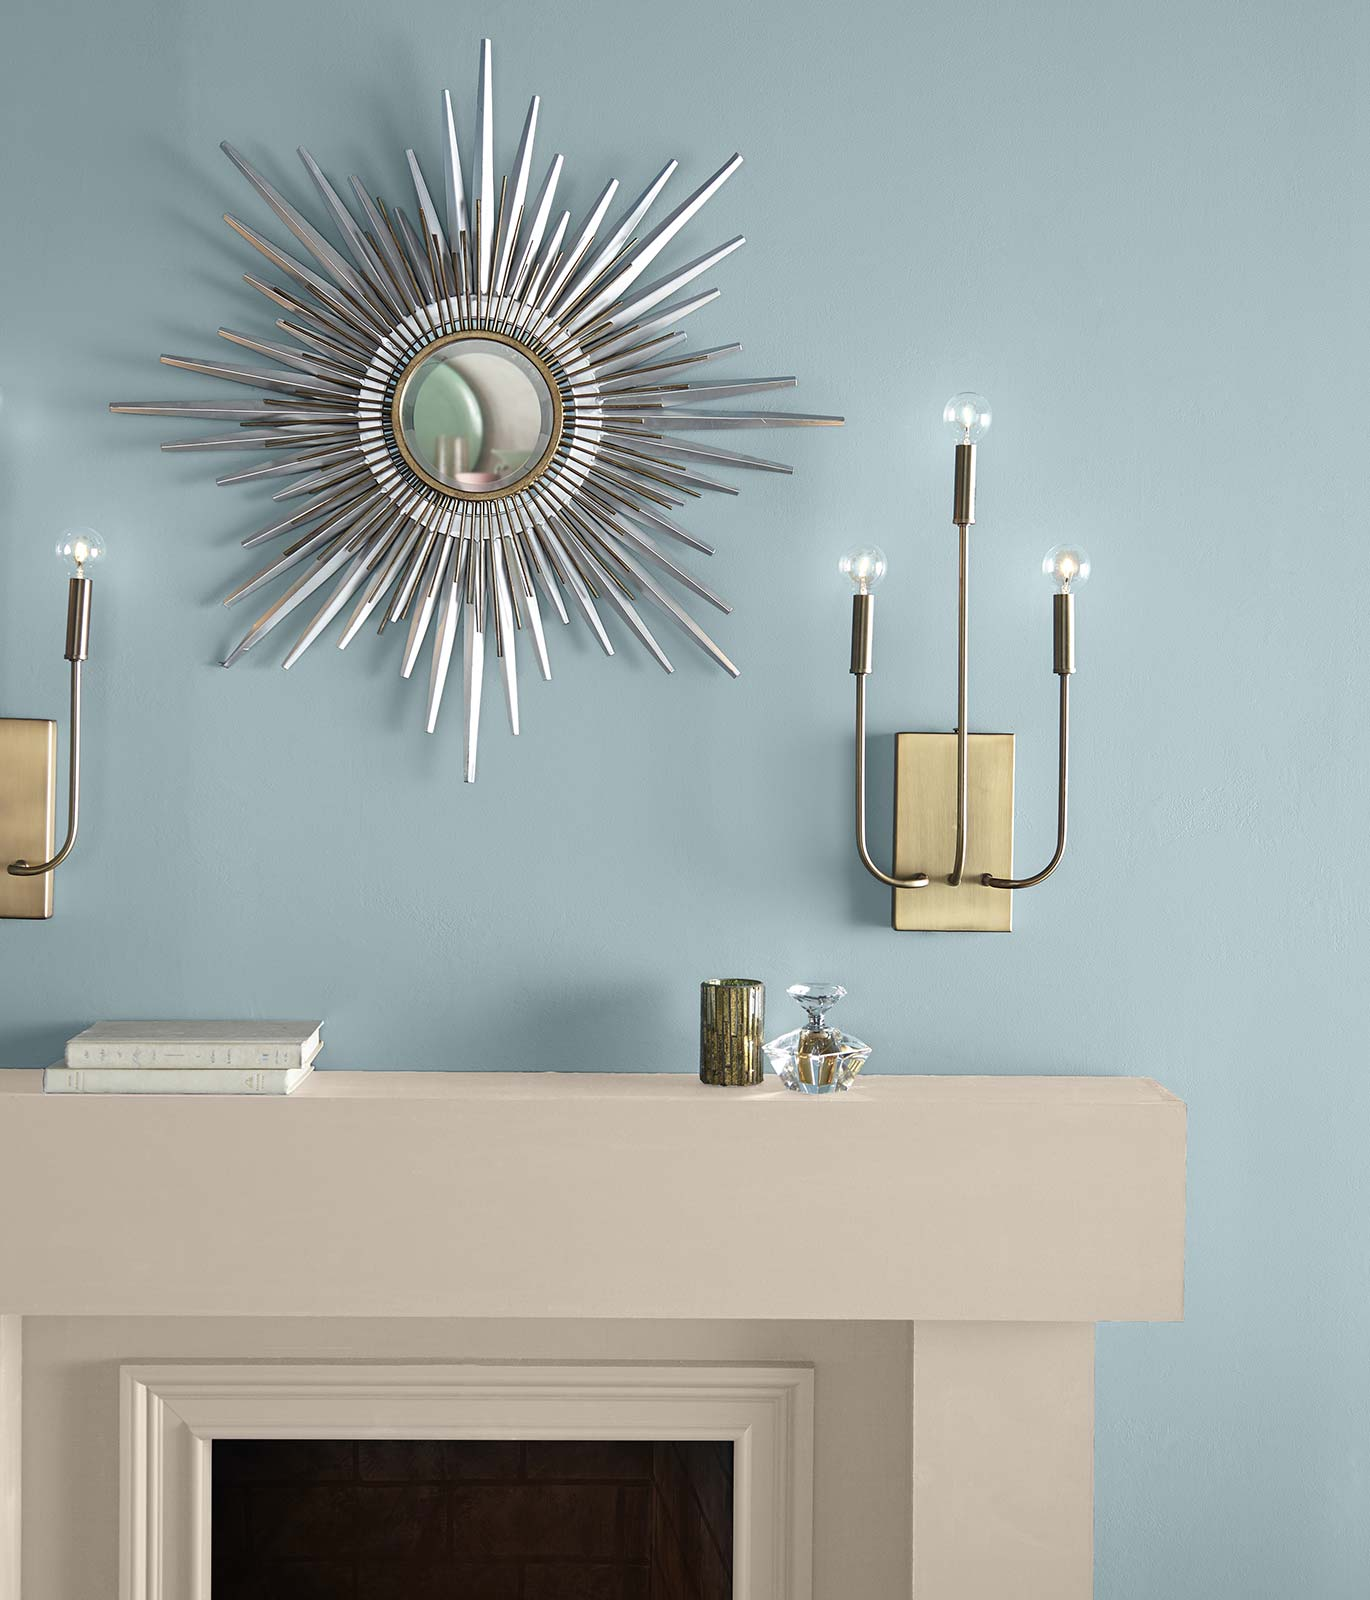 Image via Behr, feat. wall paint color: 'Dayflower' by Behr